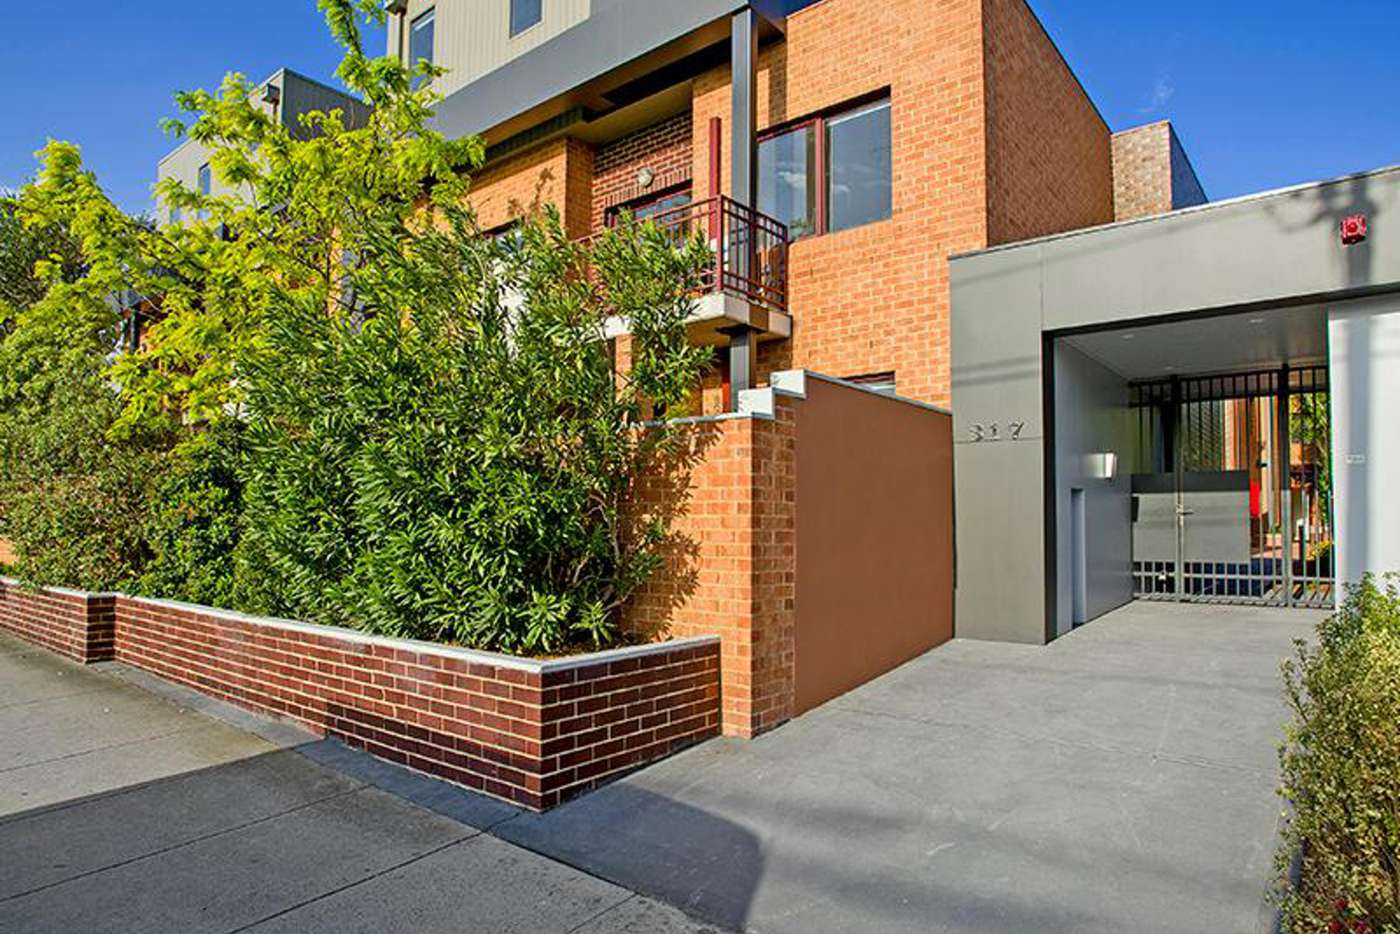 Seventh view of Homely apartment listing, 18/317 Hawthorn Road, Caulfield VIC 3162